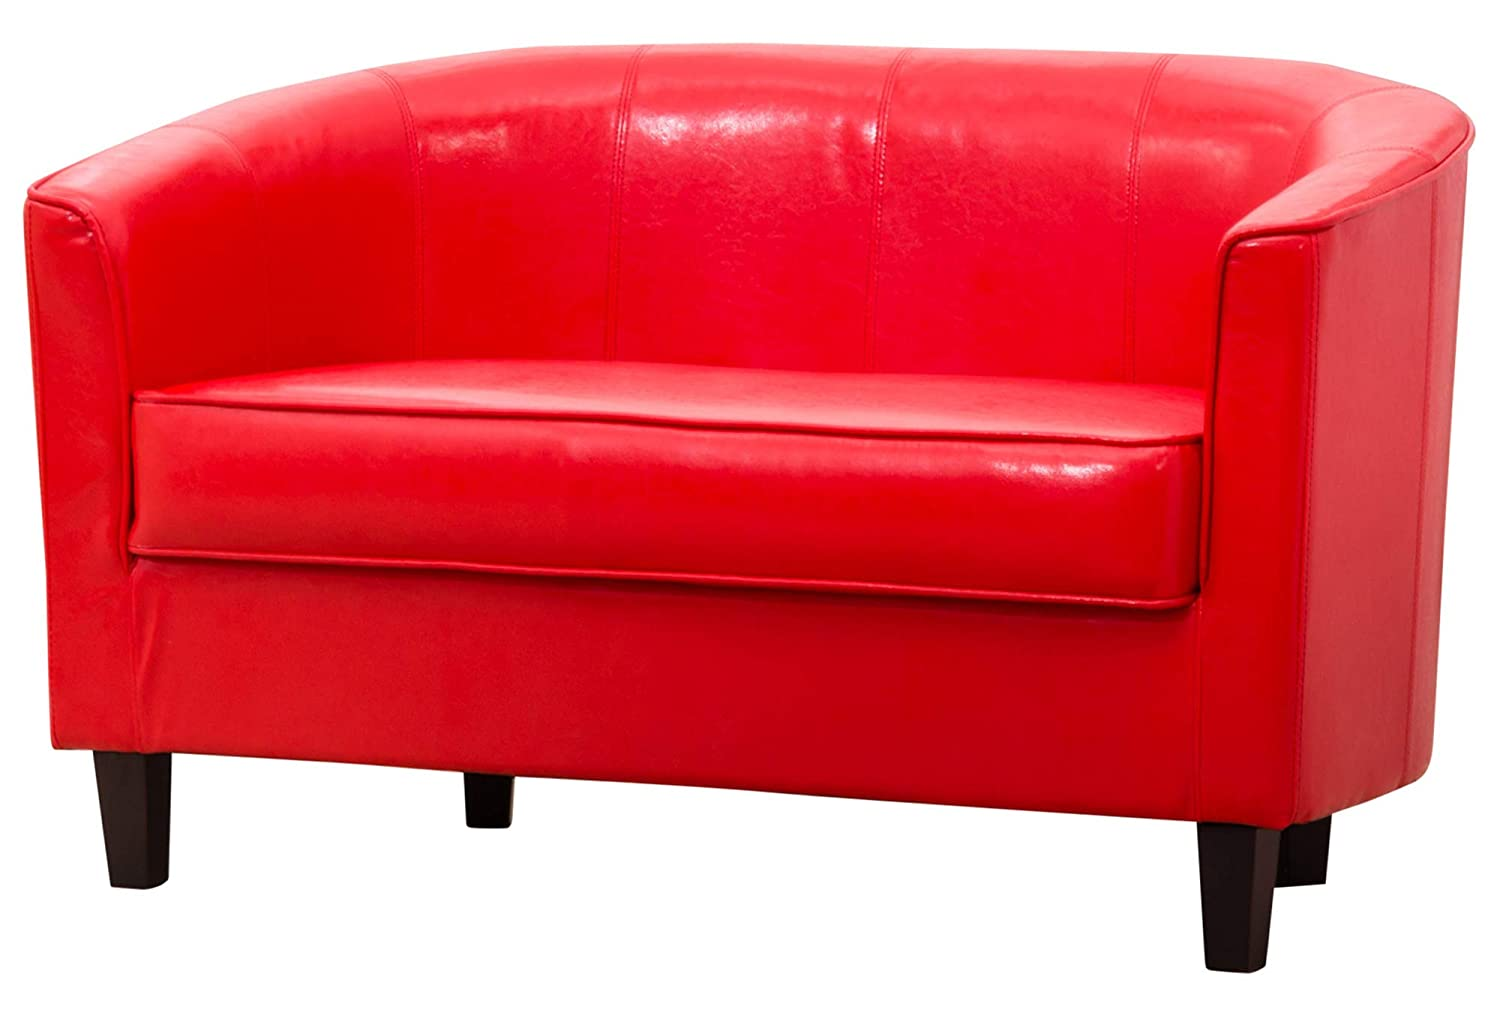 Sofa Collection Villemont Bonded Leather 2 Tub Chair/Sofa Seating (Red), 66x118x71 cm 5060363584796